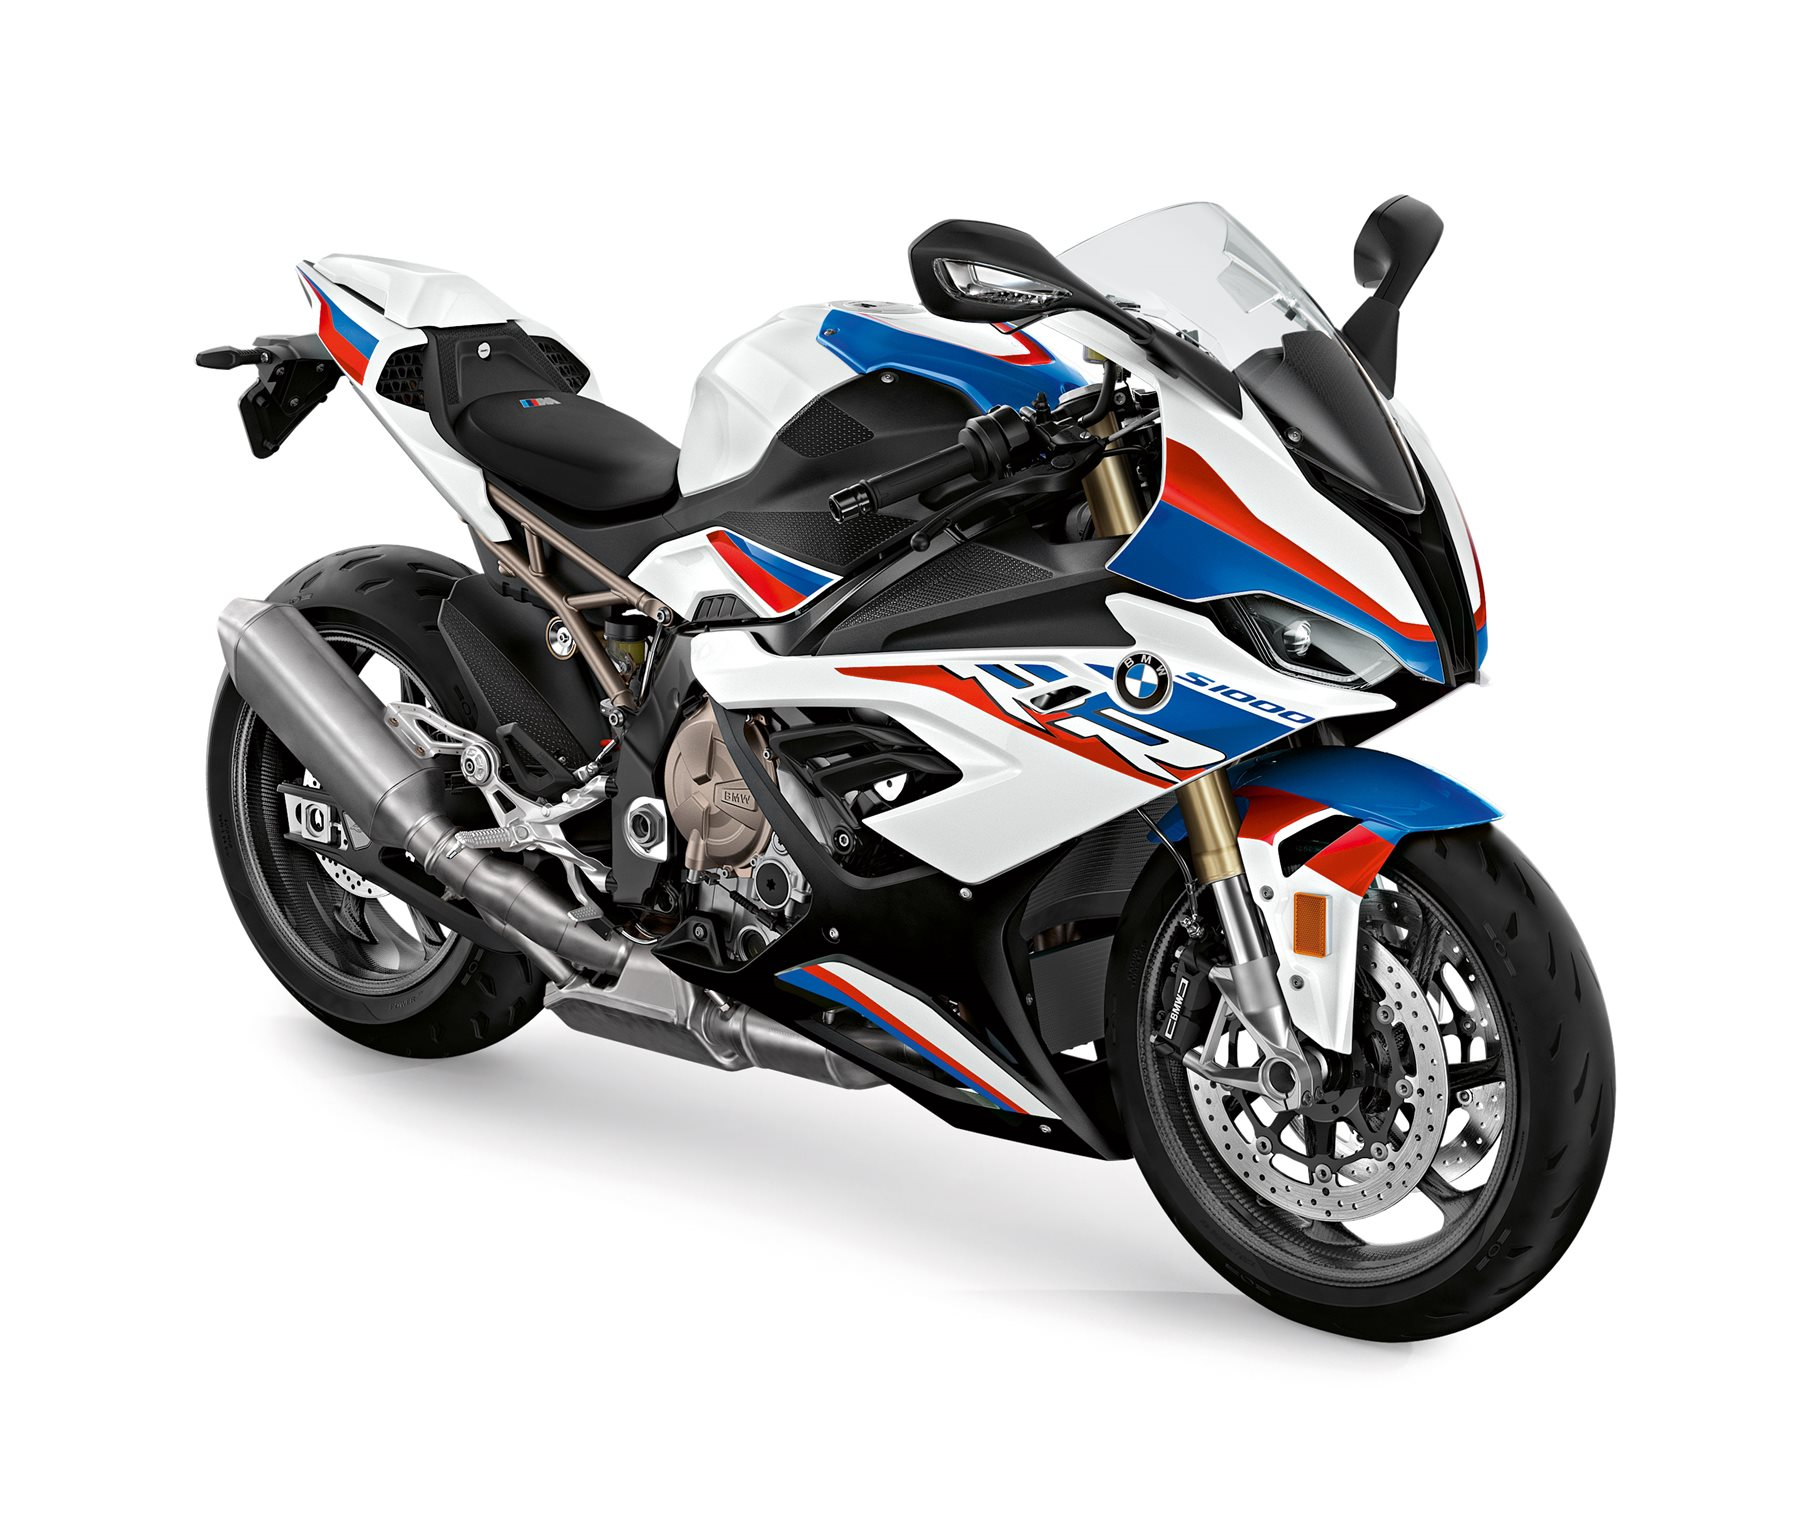 2020 BMW S1000Rr Ratings